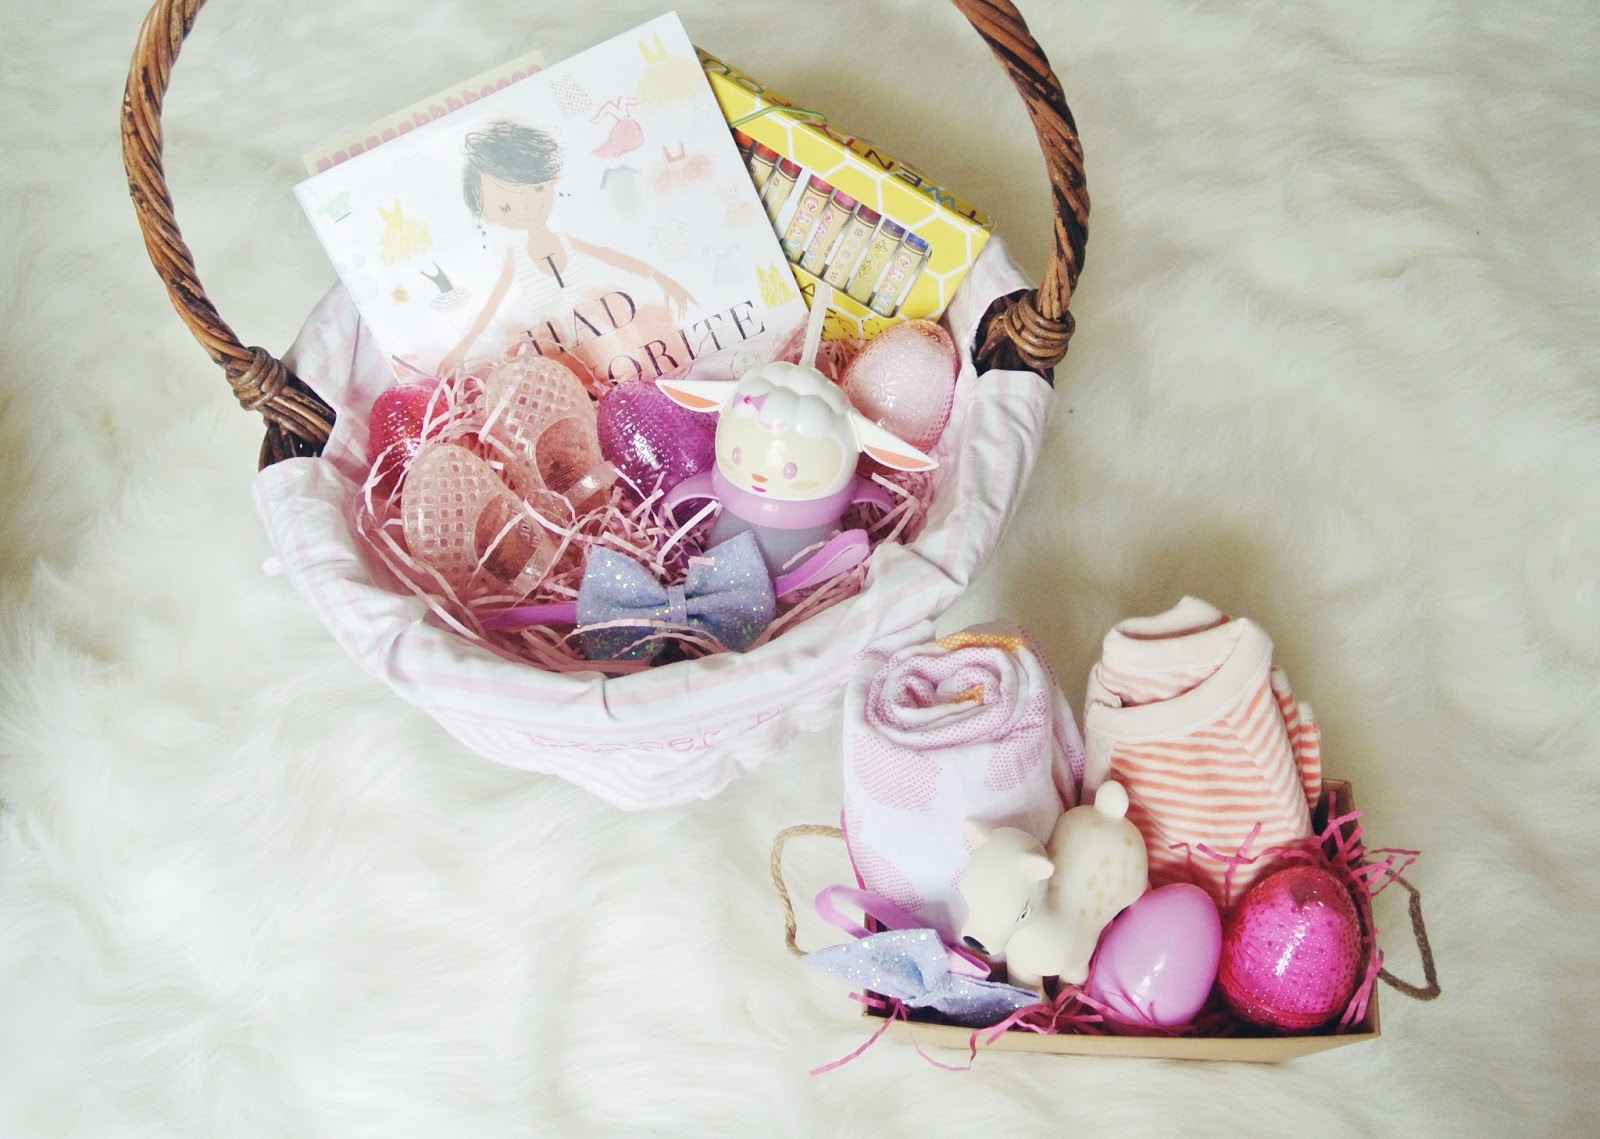 Easter basket goodies garvinandco what are you putting in your babes easter baskets this year hoping mine is full of donuts negle Choice Image